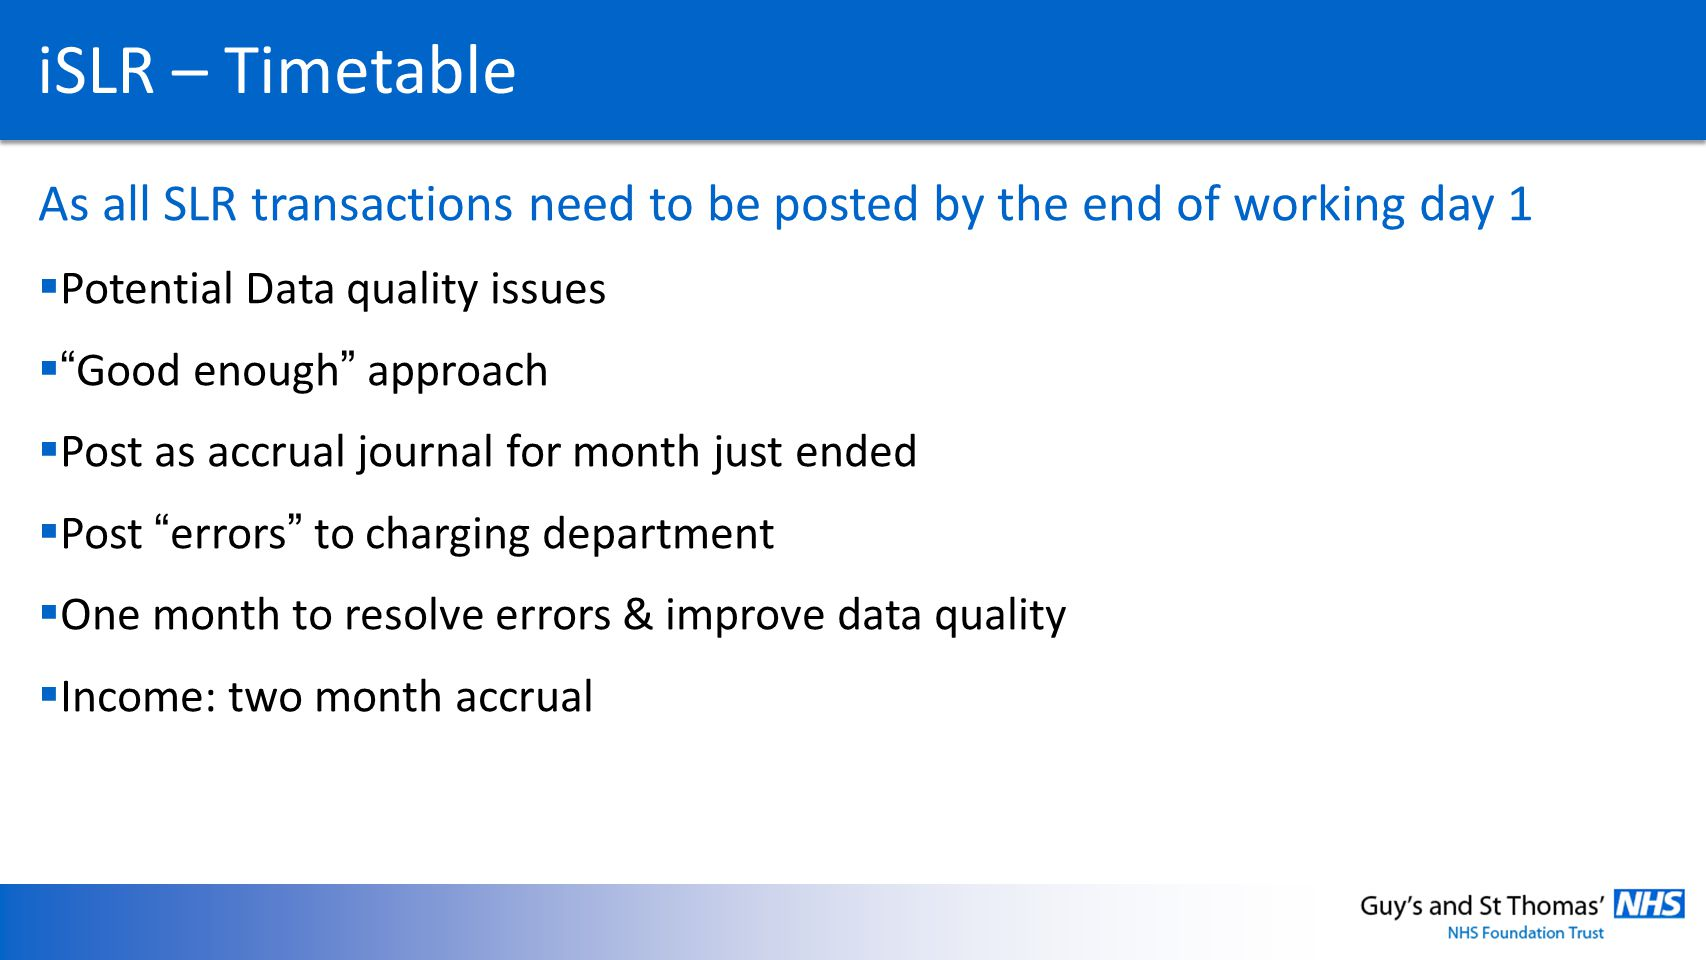 iSLR – Timetable As all SLR transactions need to be posted by the end of working day 1. Potential Data quality issues.